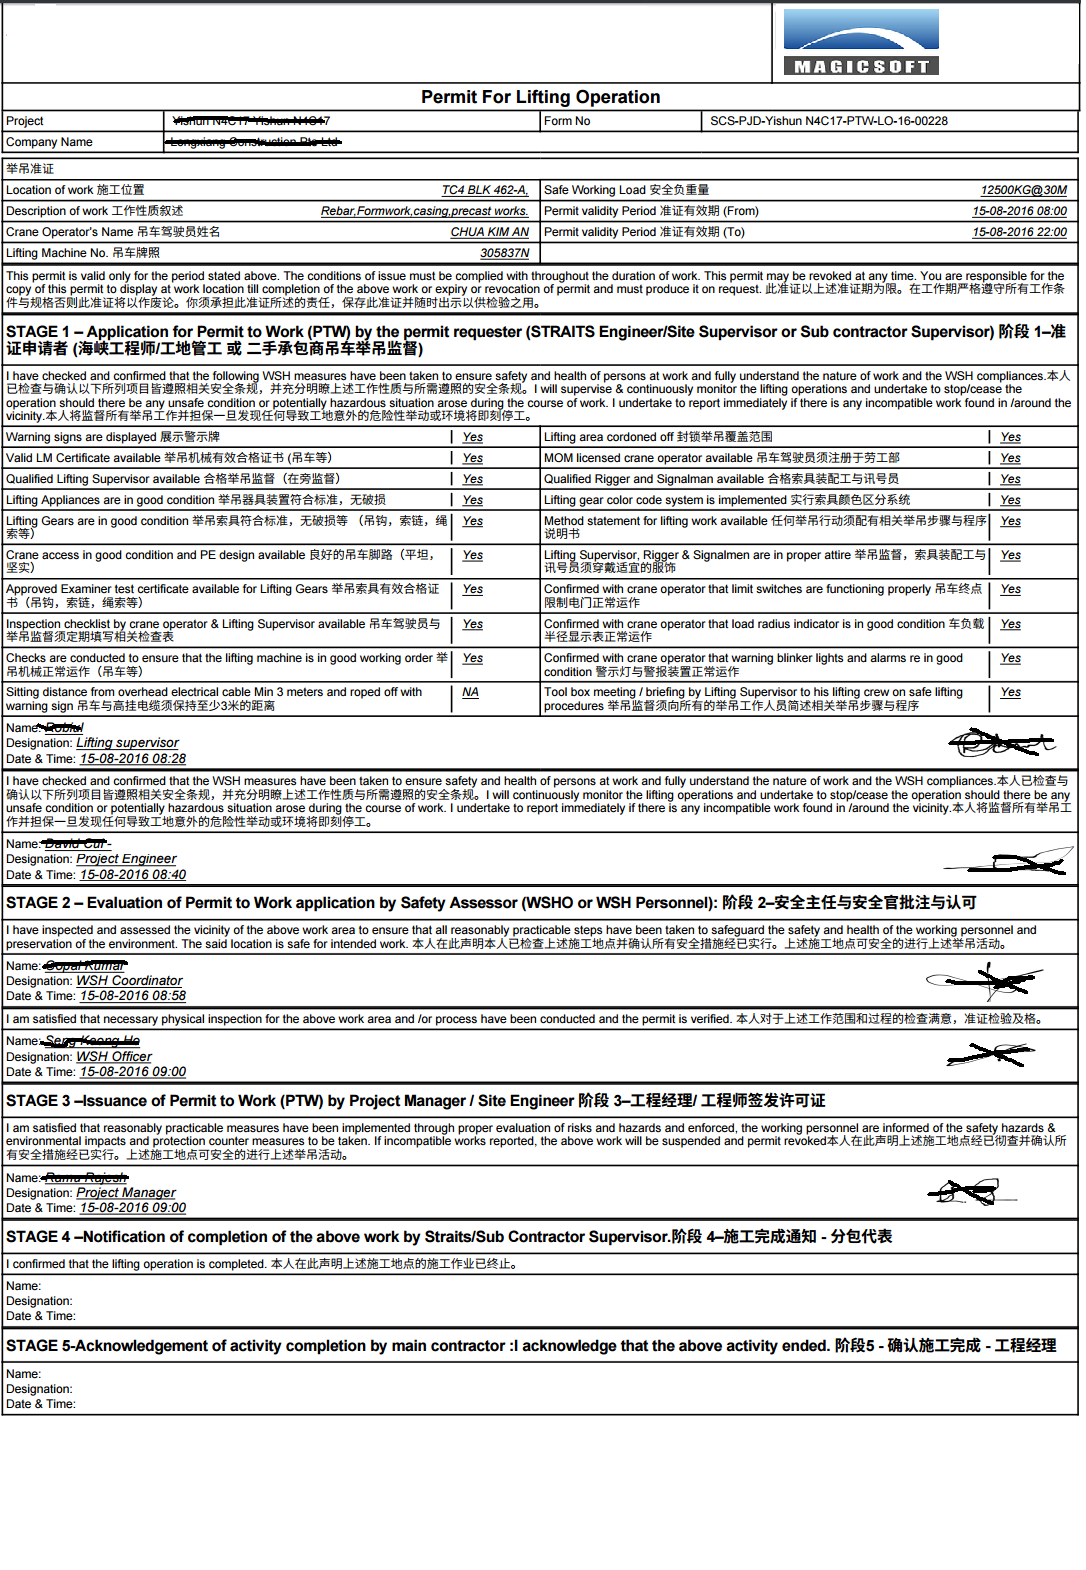 permit-for-lifting-operation